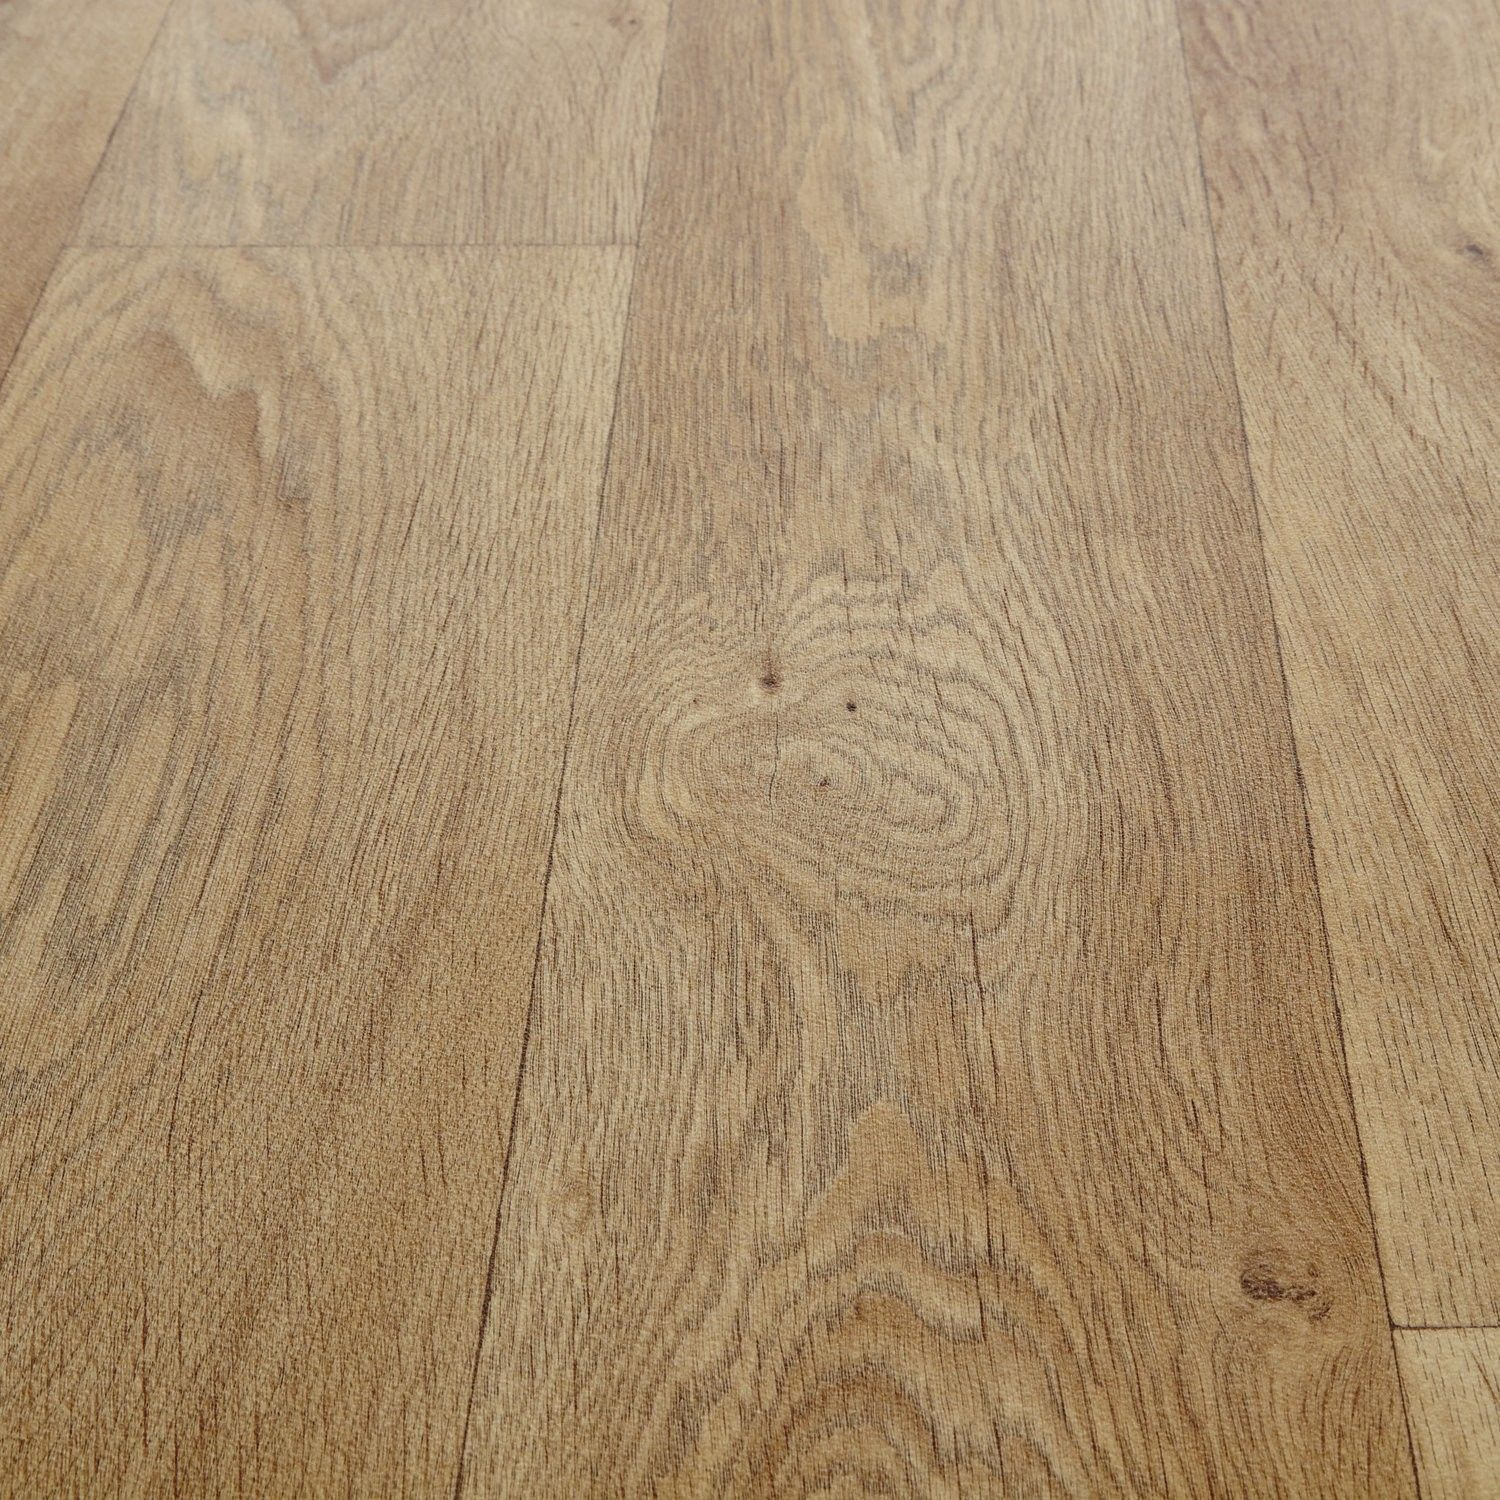 Wood Effect Laminate Flooring For Bathrooms: Classic Style 554 Toronto Wood Effect Vinyl Flooring